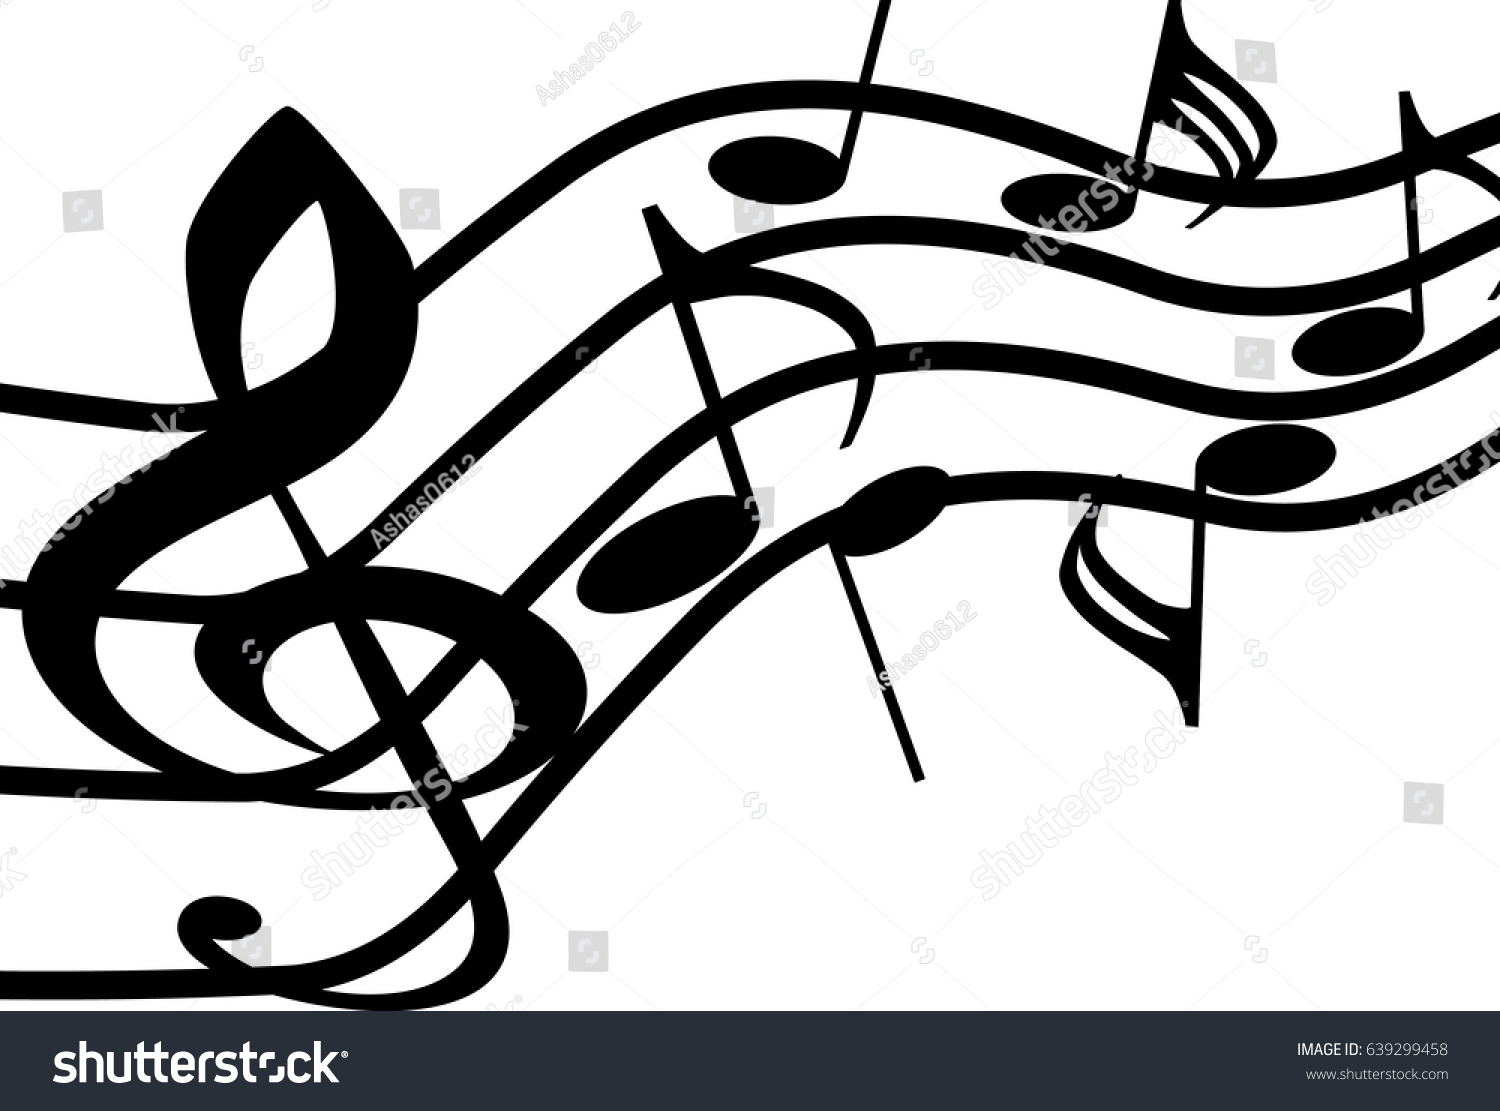 Black icons music treble clef music stock vector 639299458 black icons of music treble clef music symbols vector buycottarizona Gallery